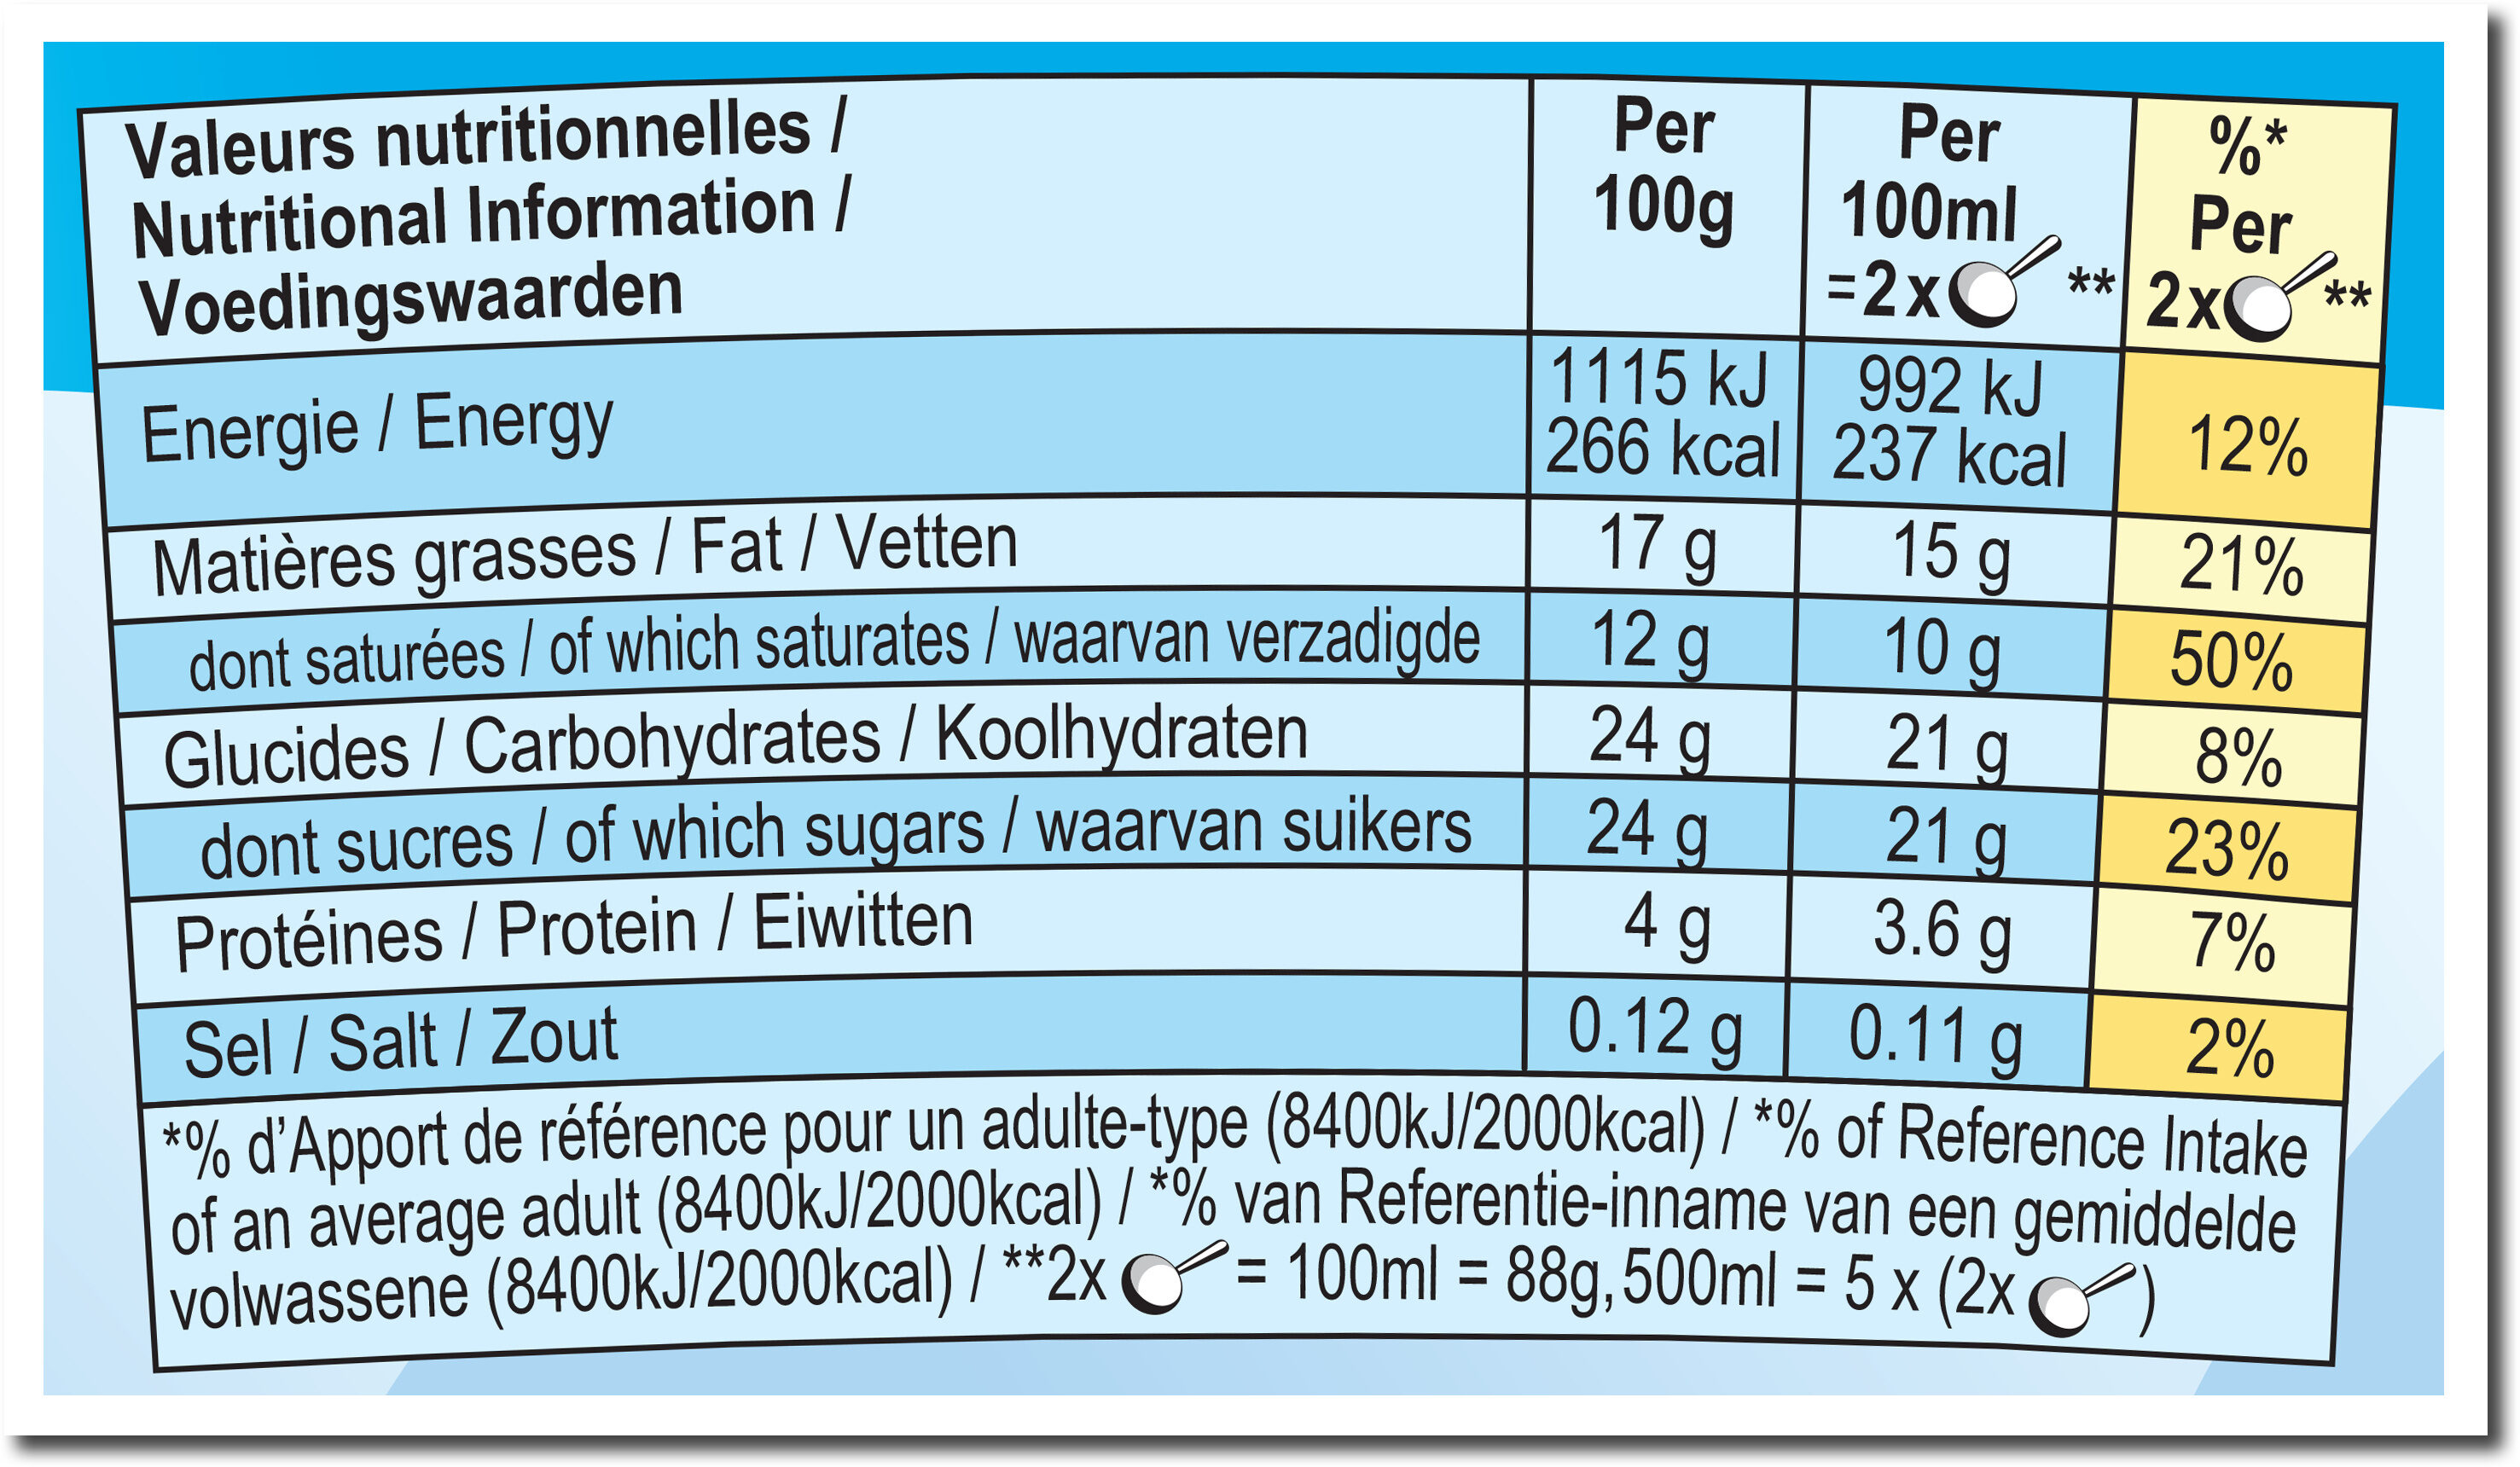 Ben & Jerry's Glace Pot Minter Wonderland 500 ml - Informations nutritionnelles - fr